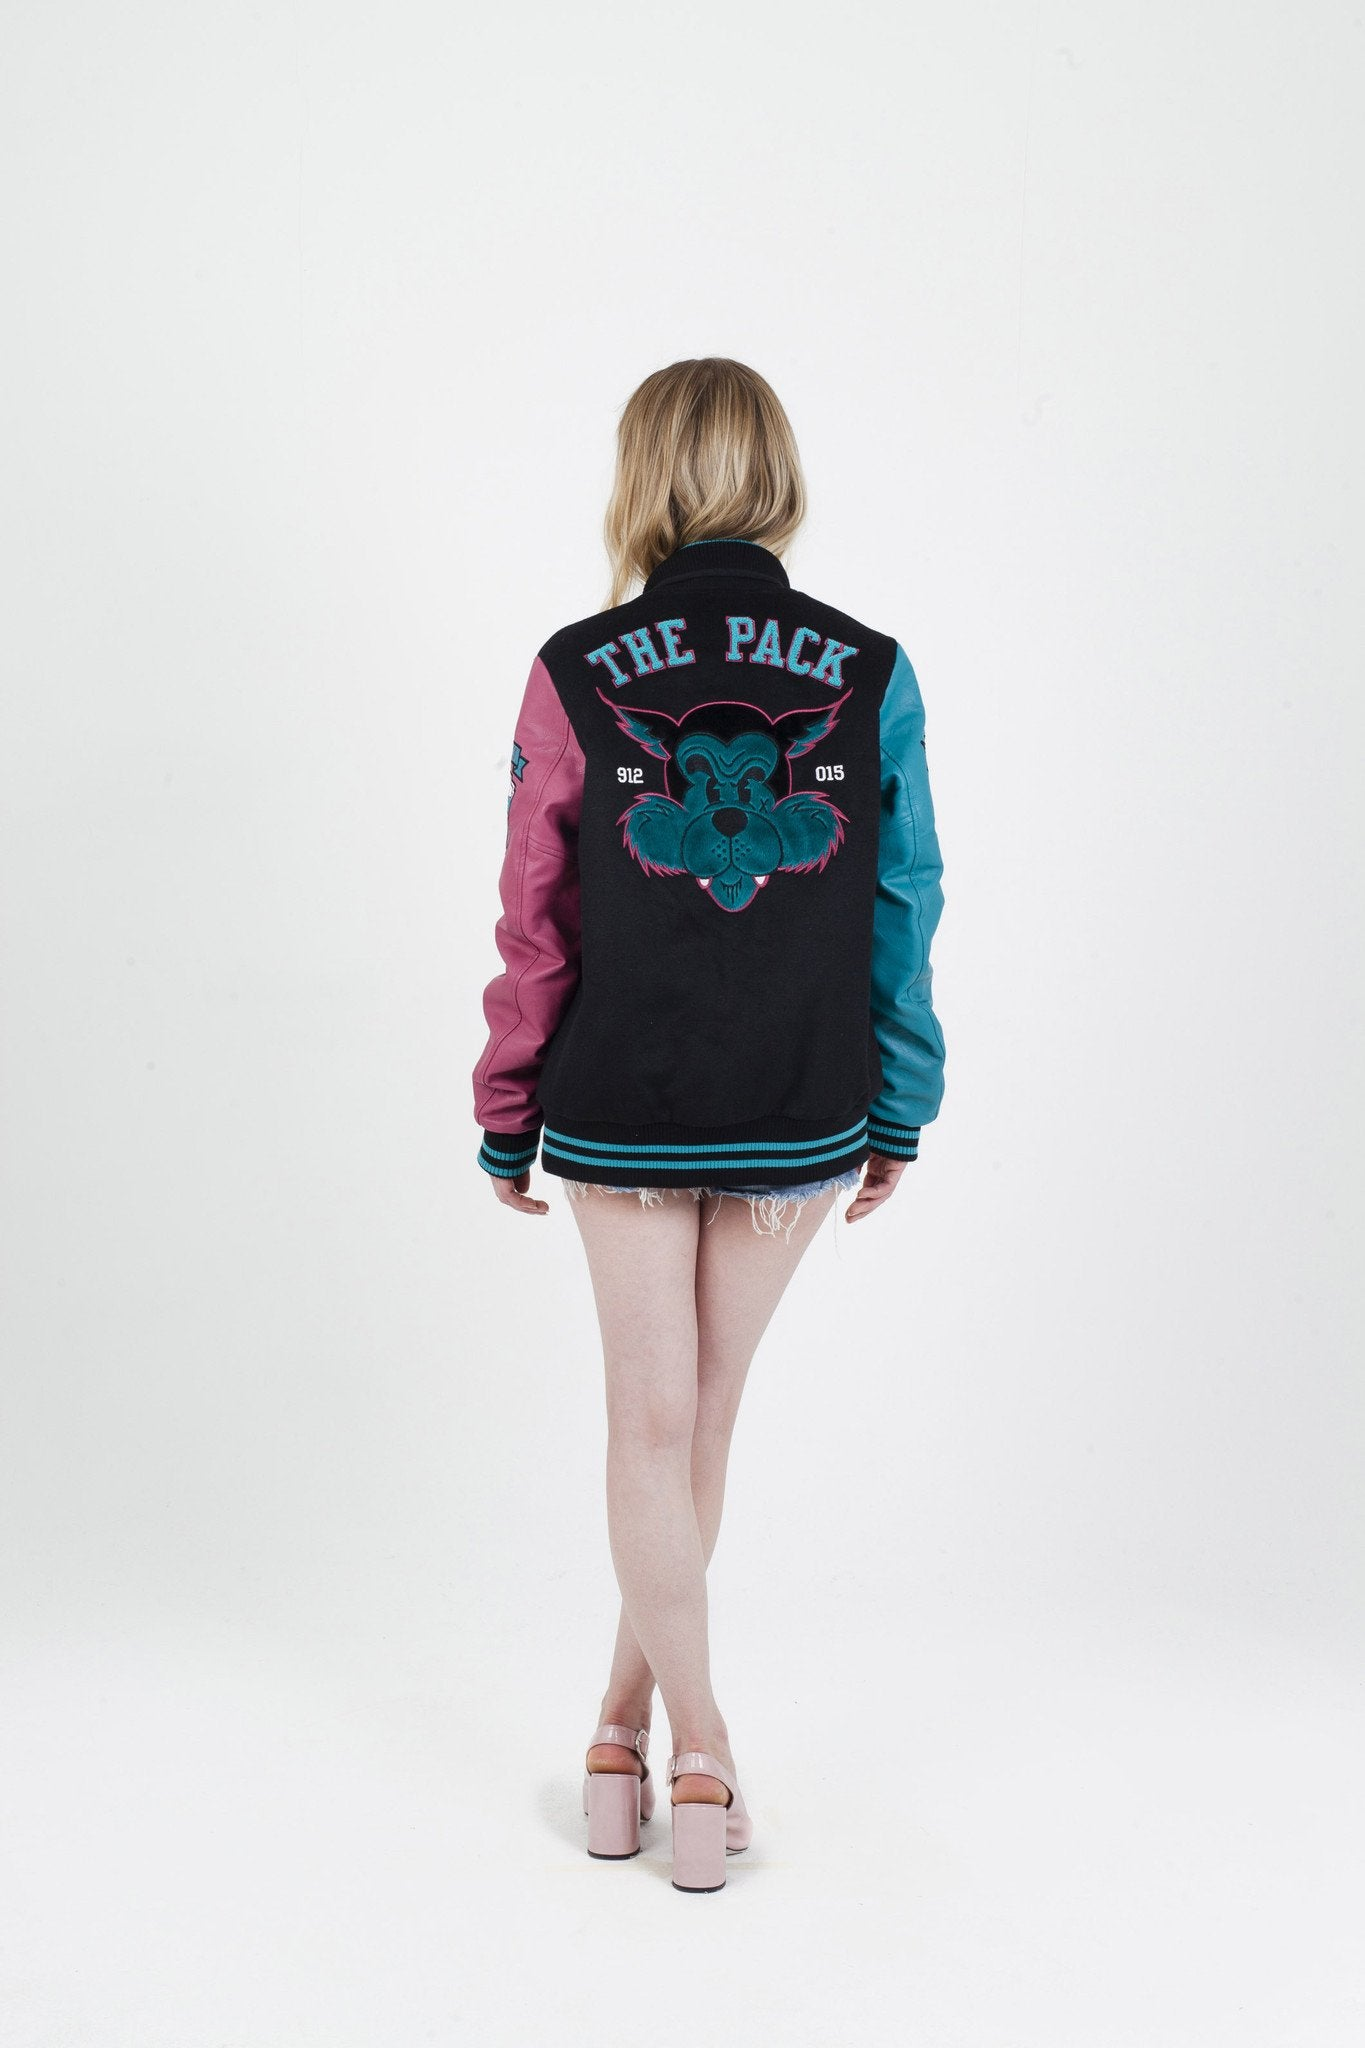 Limited edition Varsity Colour Jacket - Only 1000 made